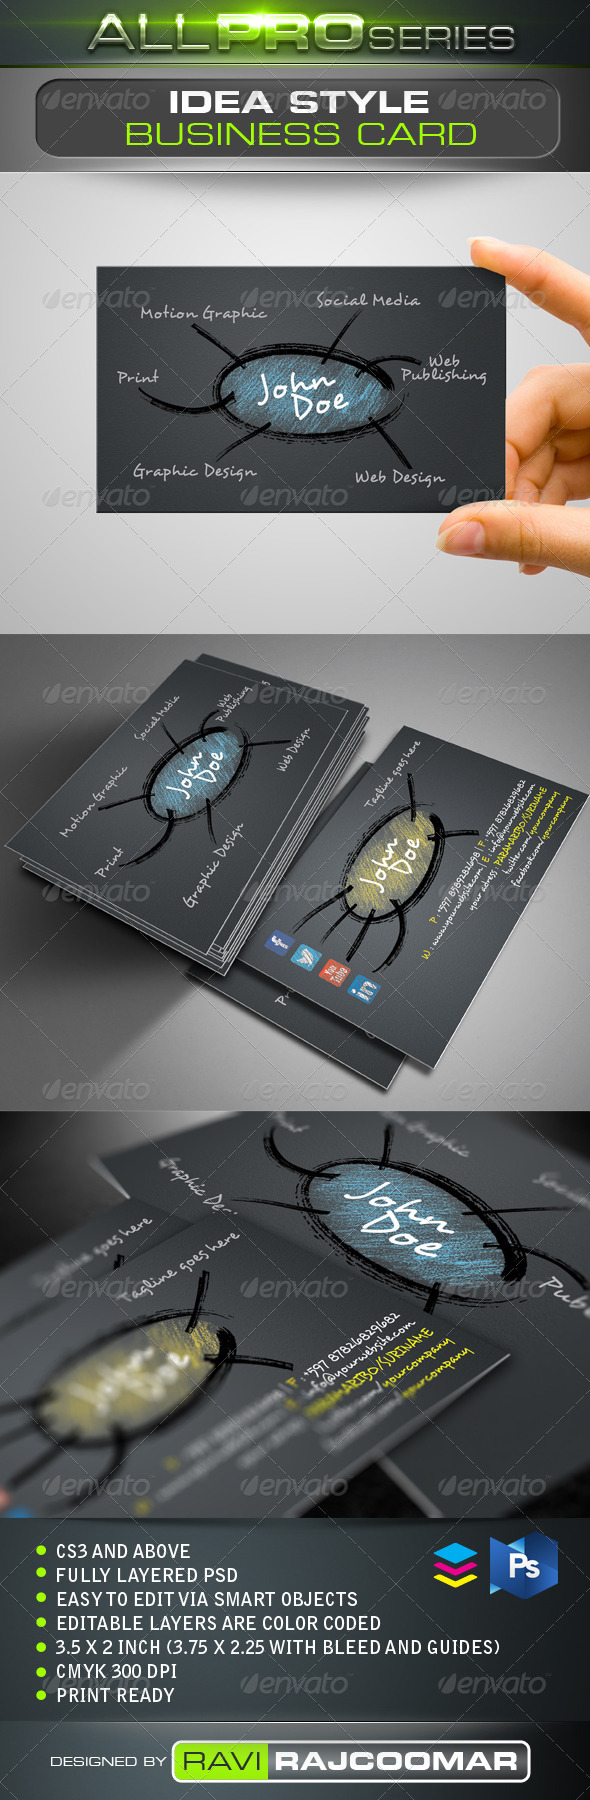 Idea Style Business Card - Creative Business Cards